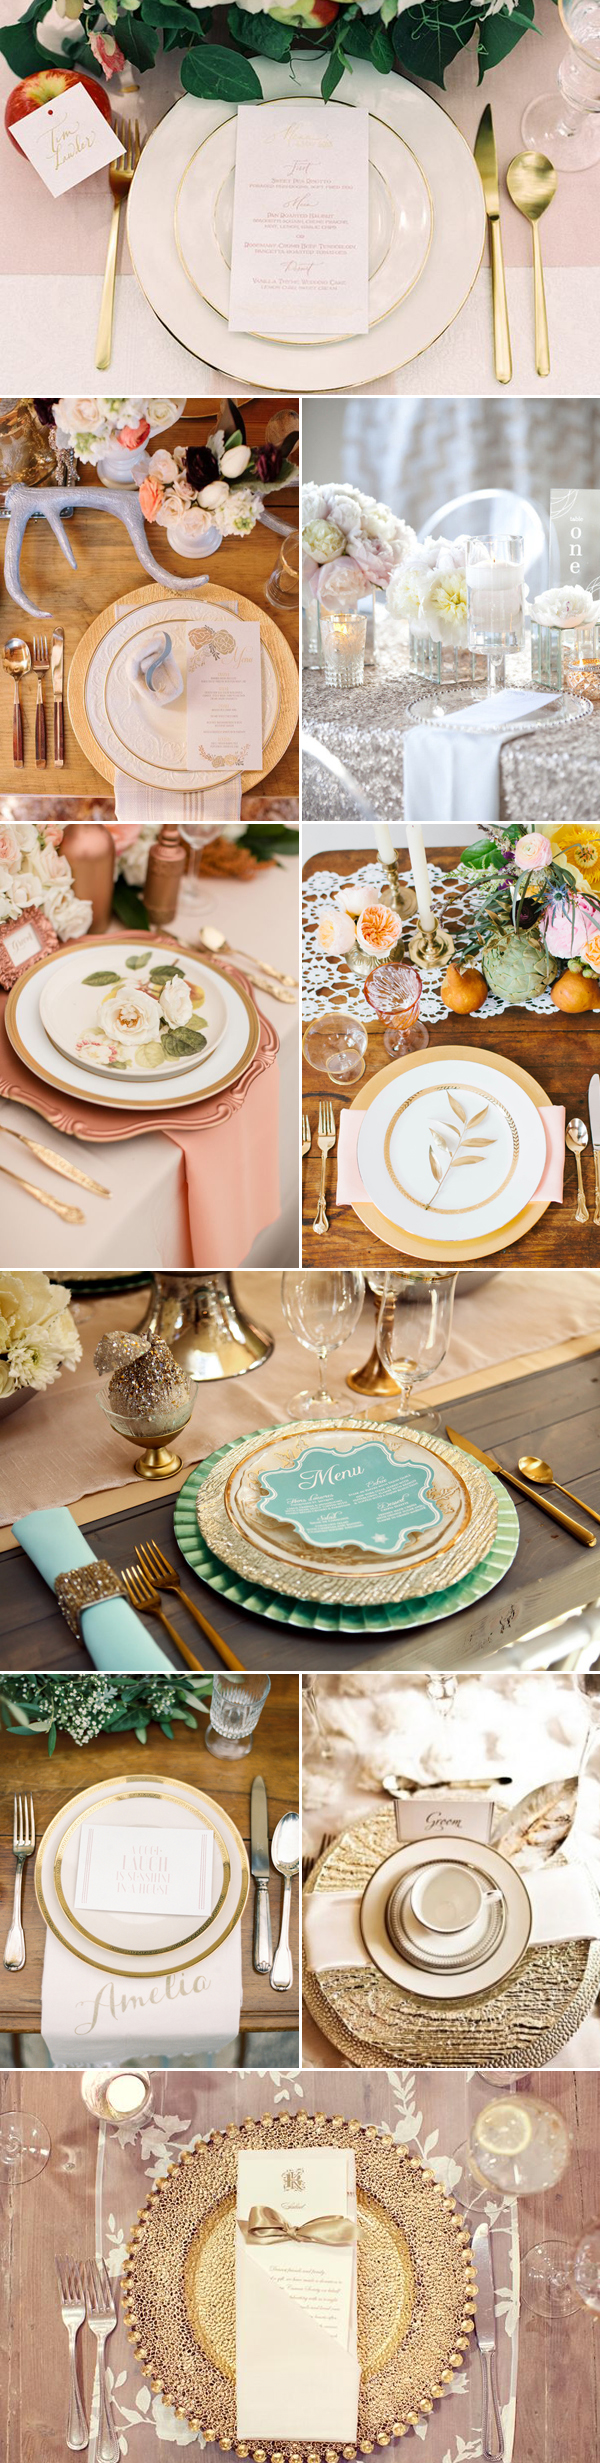 winter-placesetting01-gold